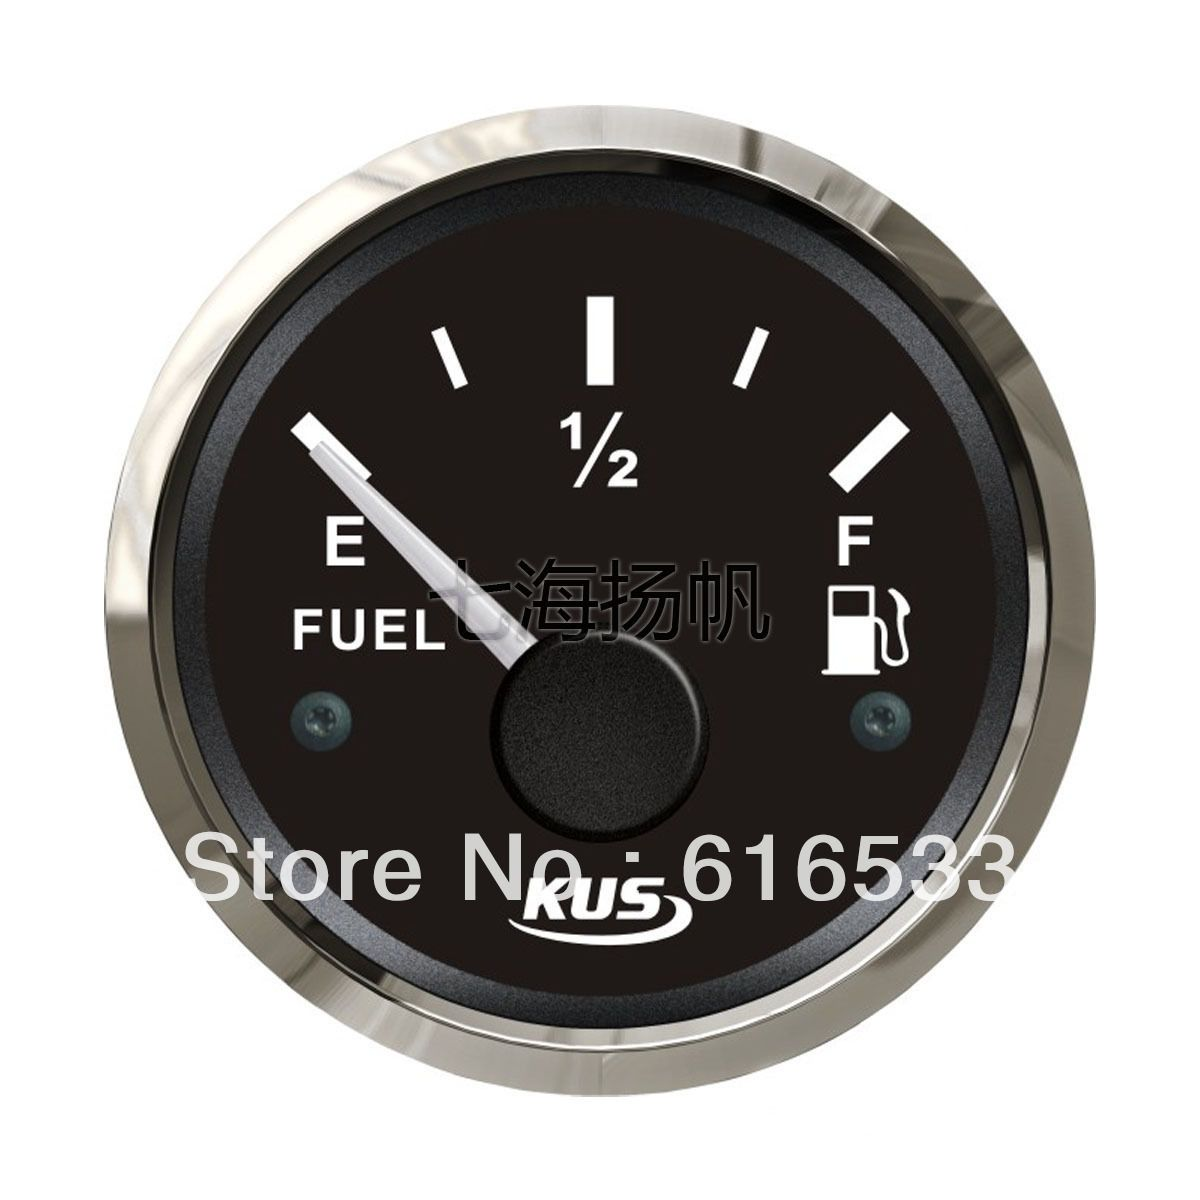 Kus 52mm oil level meter fuel tank liquid level gauge matine car rv